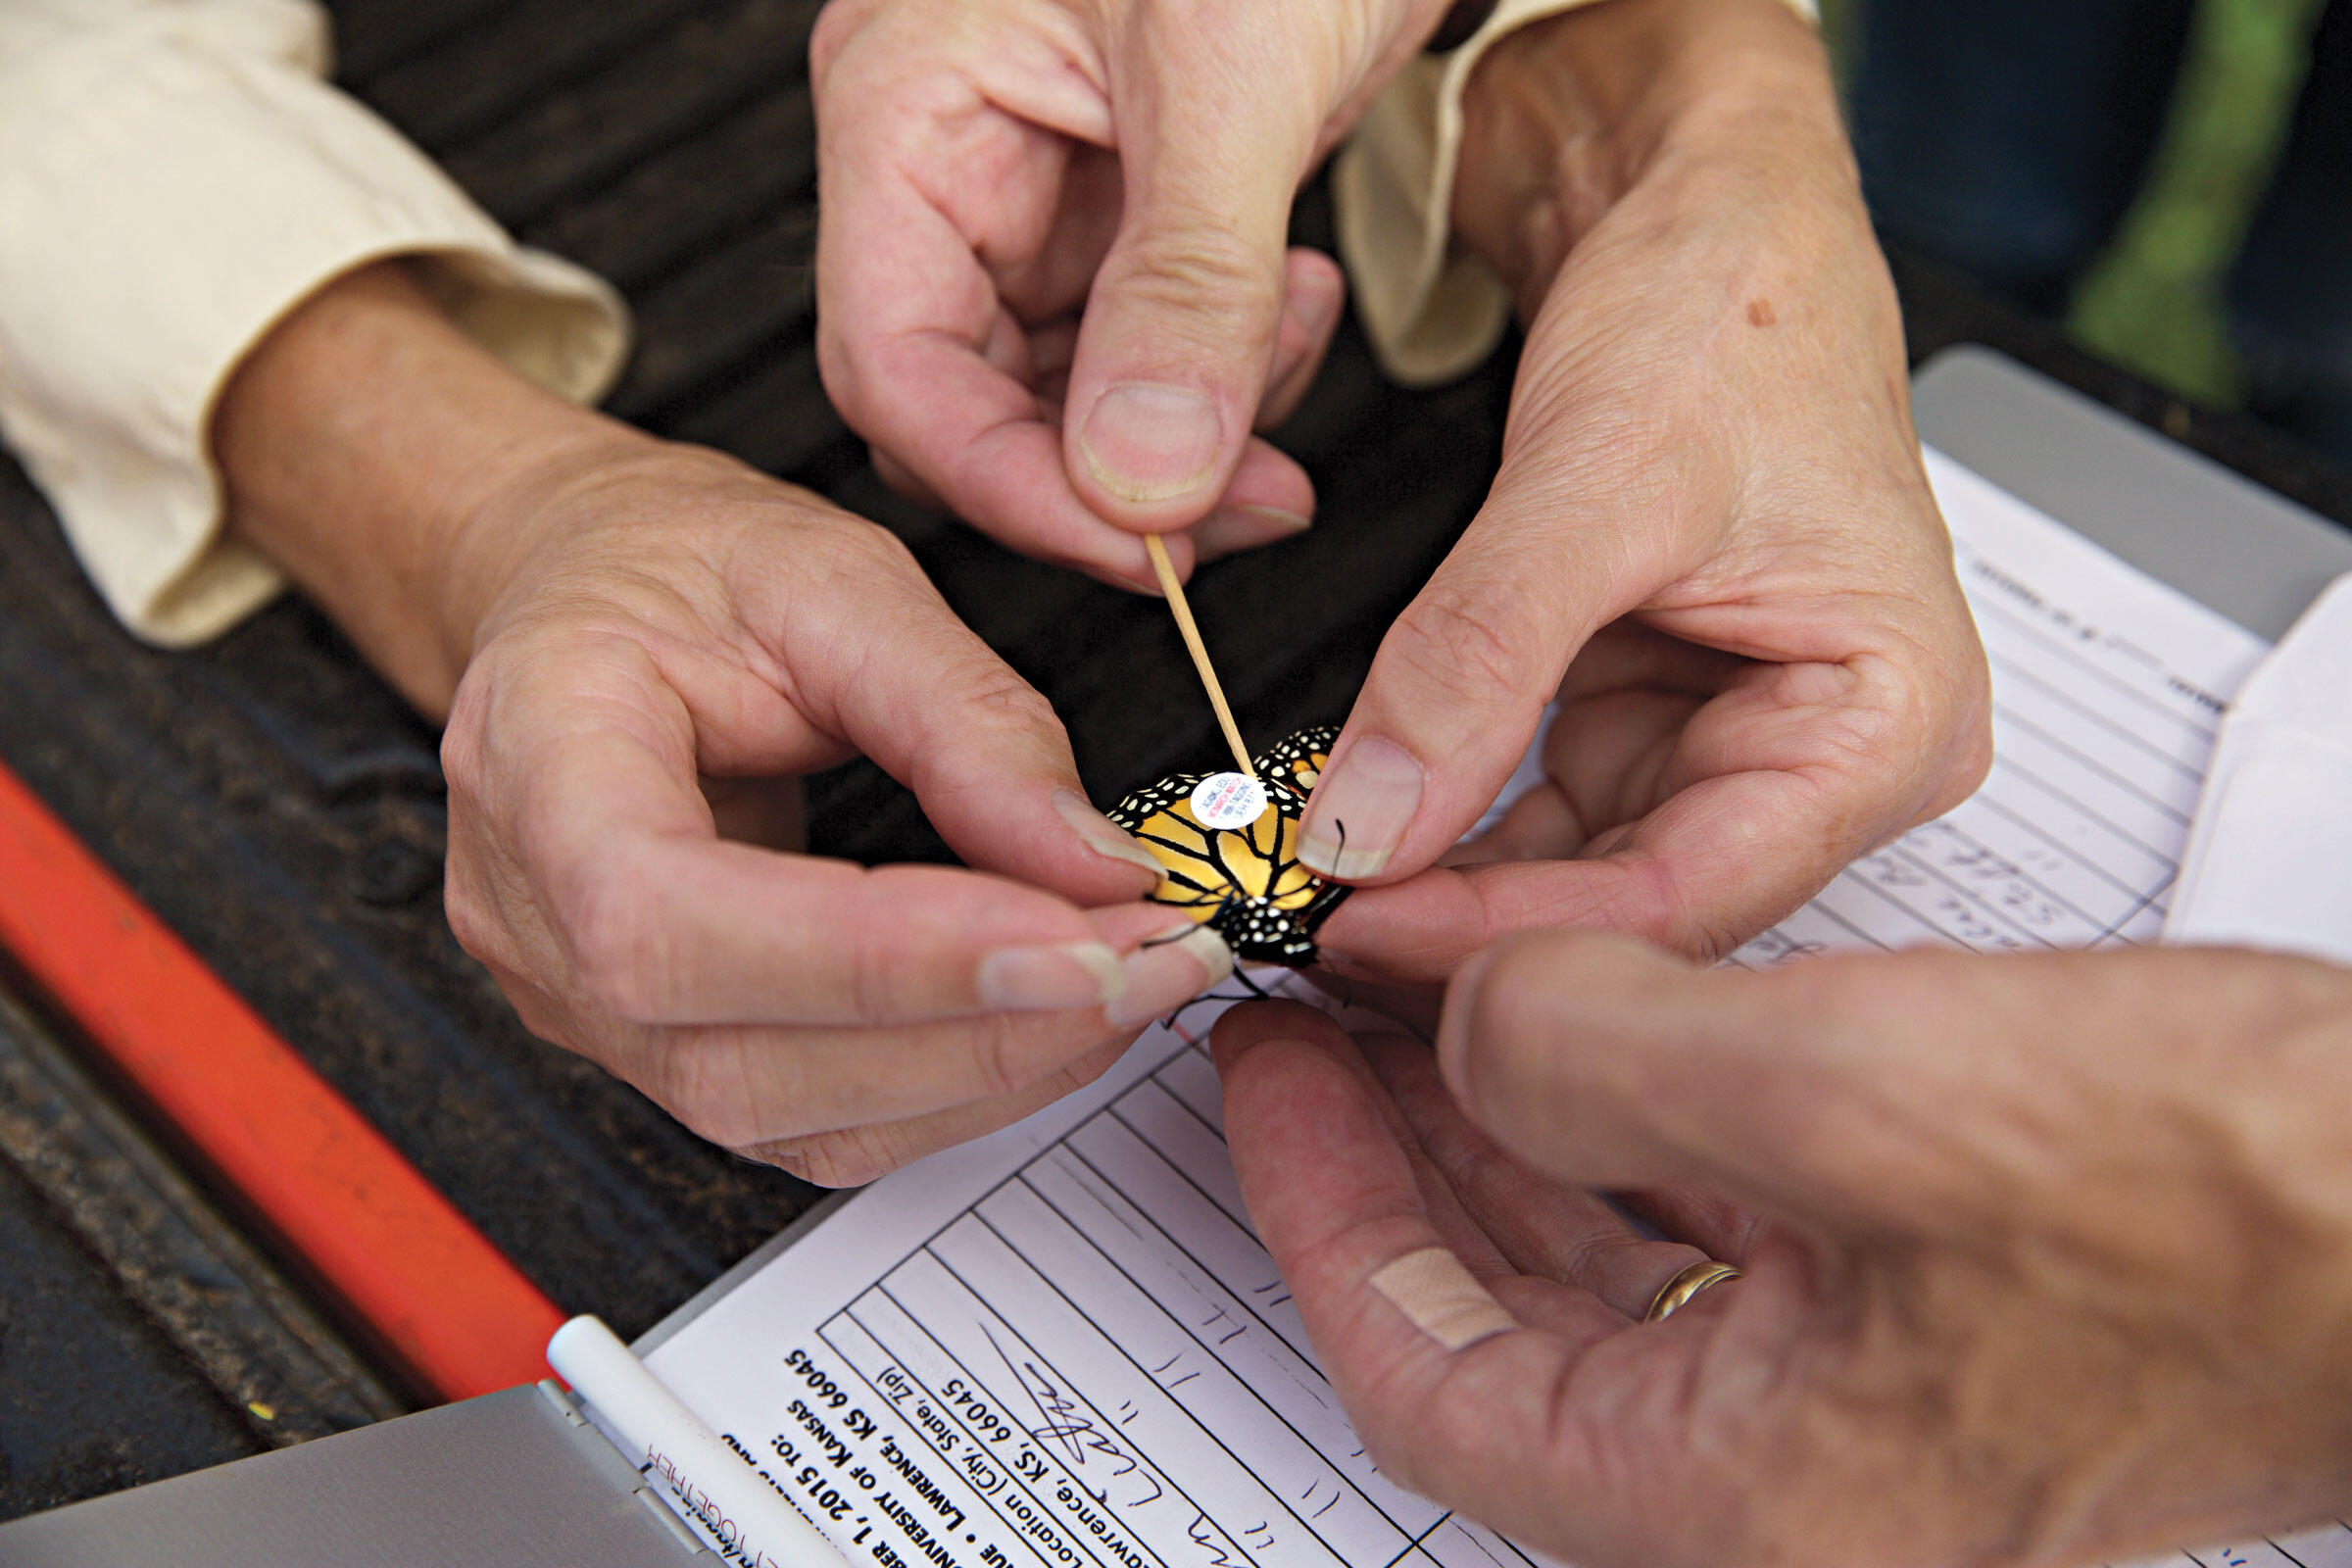 Volunteers at Goose Pond Sanctuary north of Madison, Wisconsin, gently use a toothpick to tag a monarch before releasing it for fall migration. Arlene Koziol